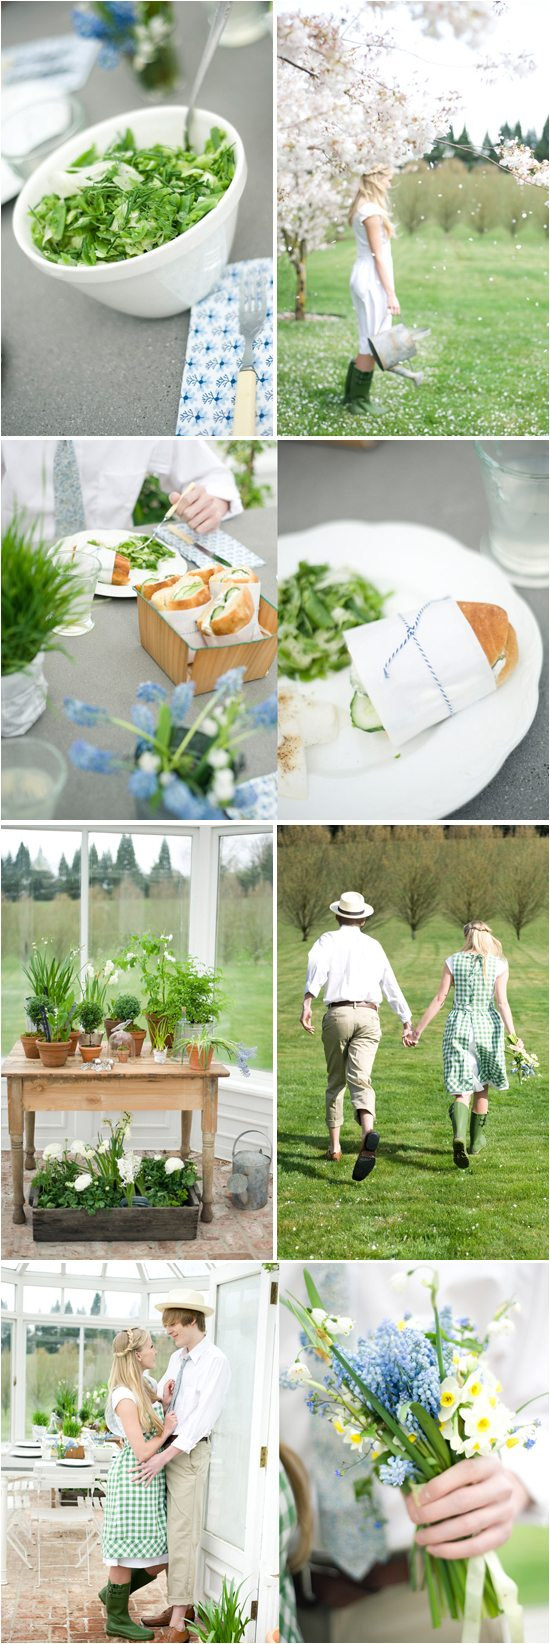 green-white-greenhouse-summer-wedding-picnic-budget-friendly-wedding-ideas